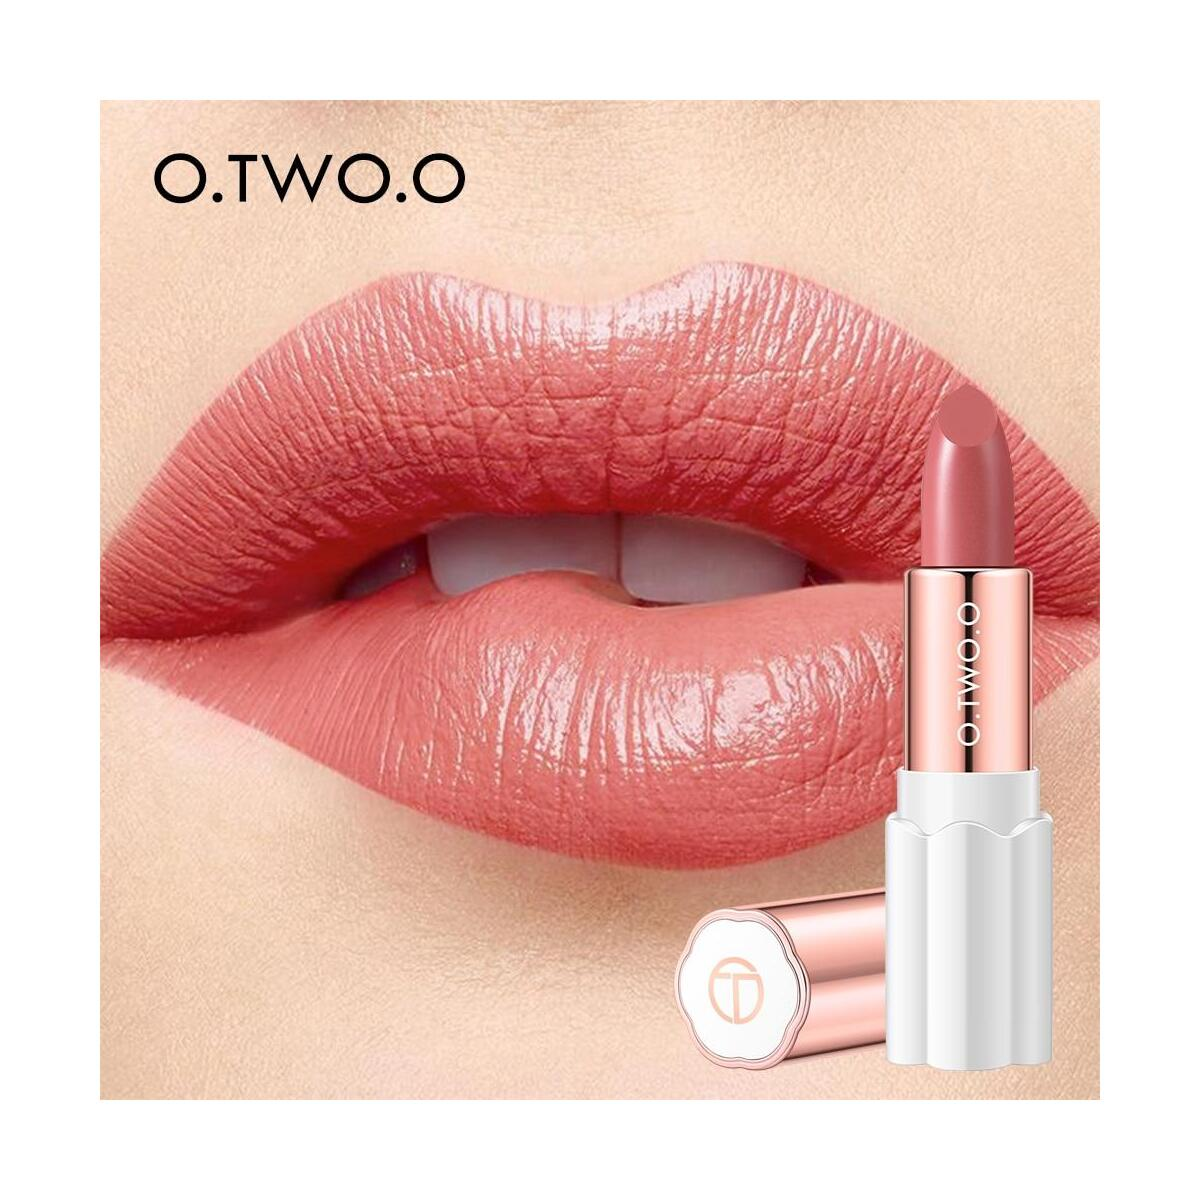 O.TWO.O Semi Velvet Lipstick, 09